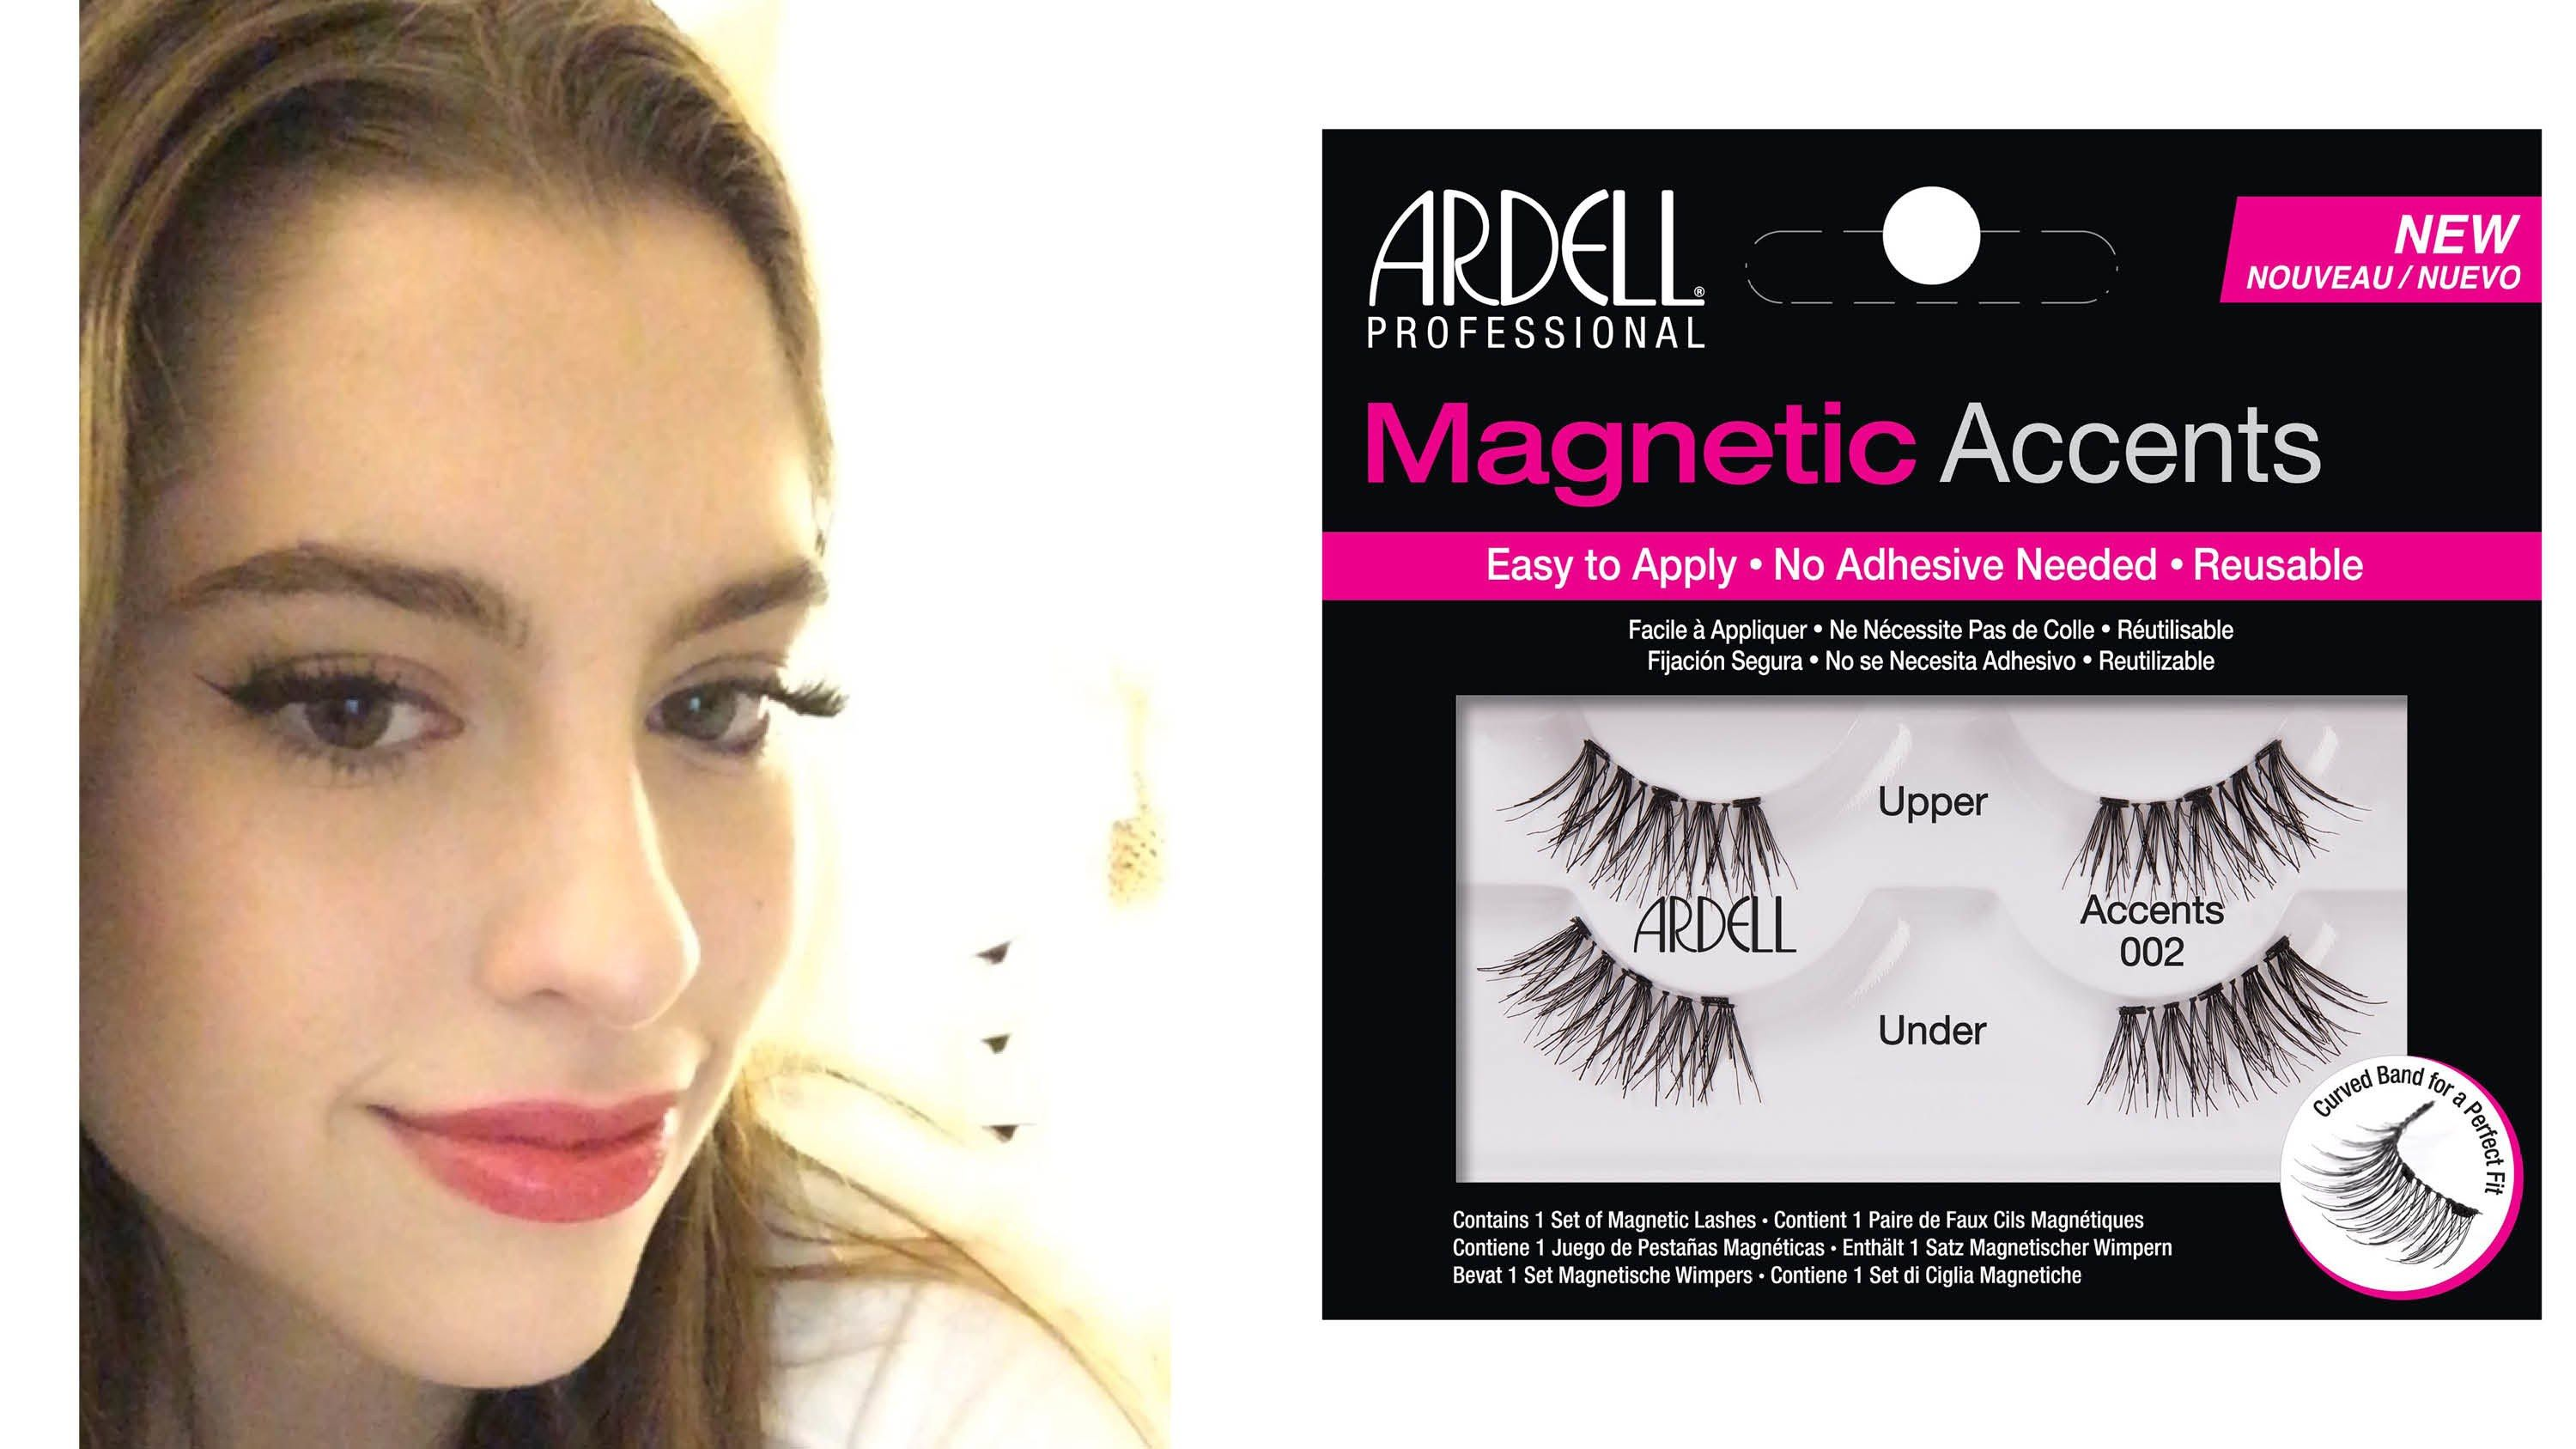 f355c3fa5e3 I can't apply false lashes to save my life, so I tried these magnetic false  lash strips and they are a real game-changer.